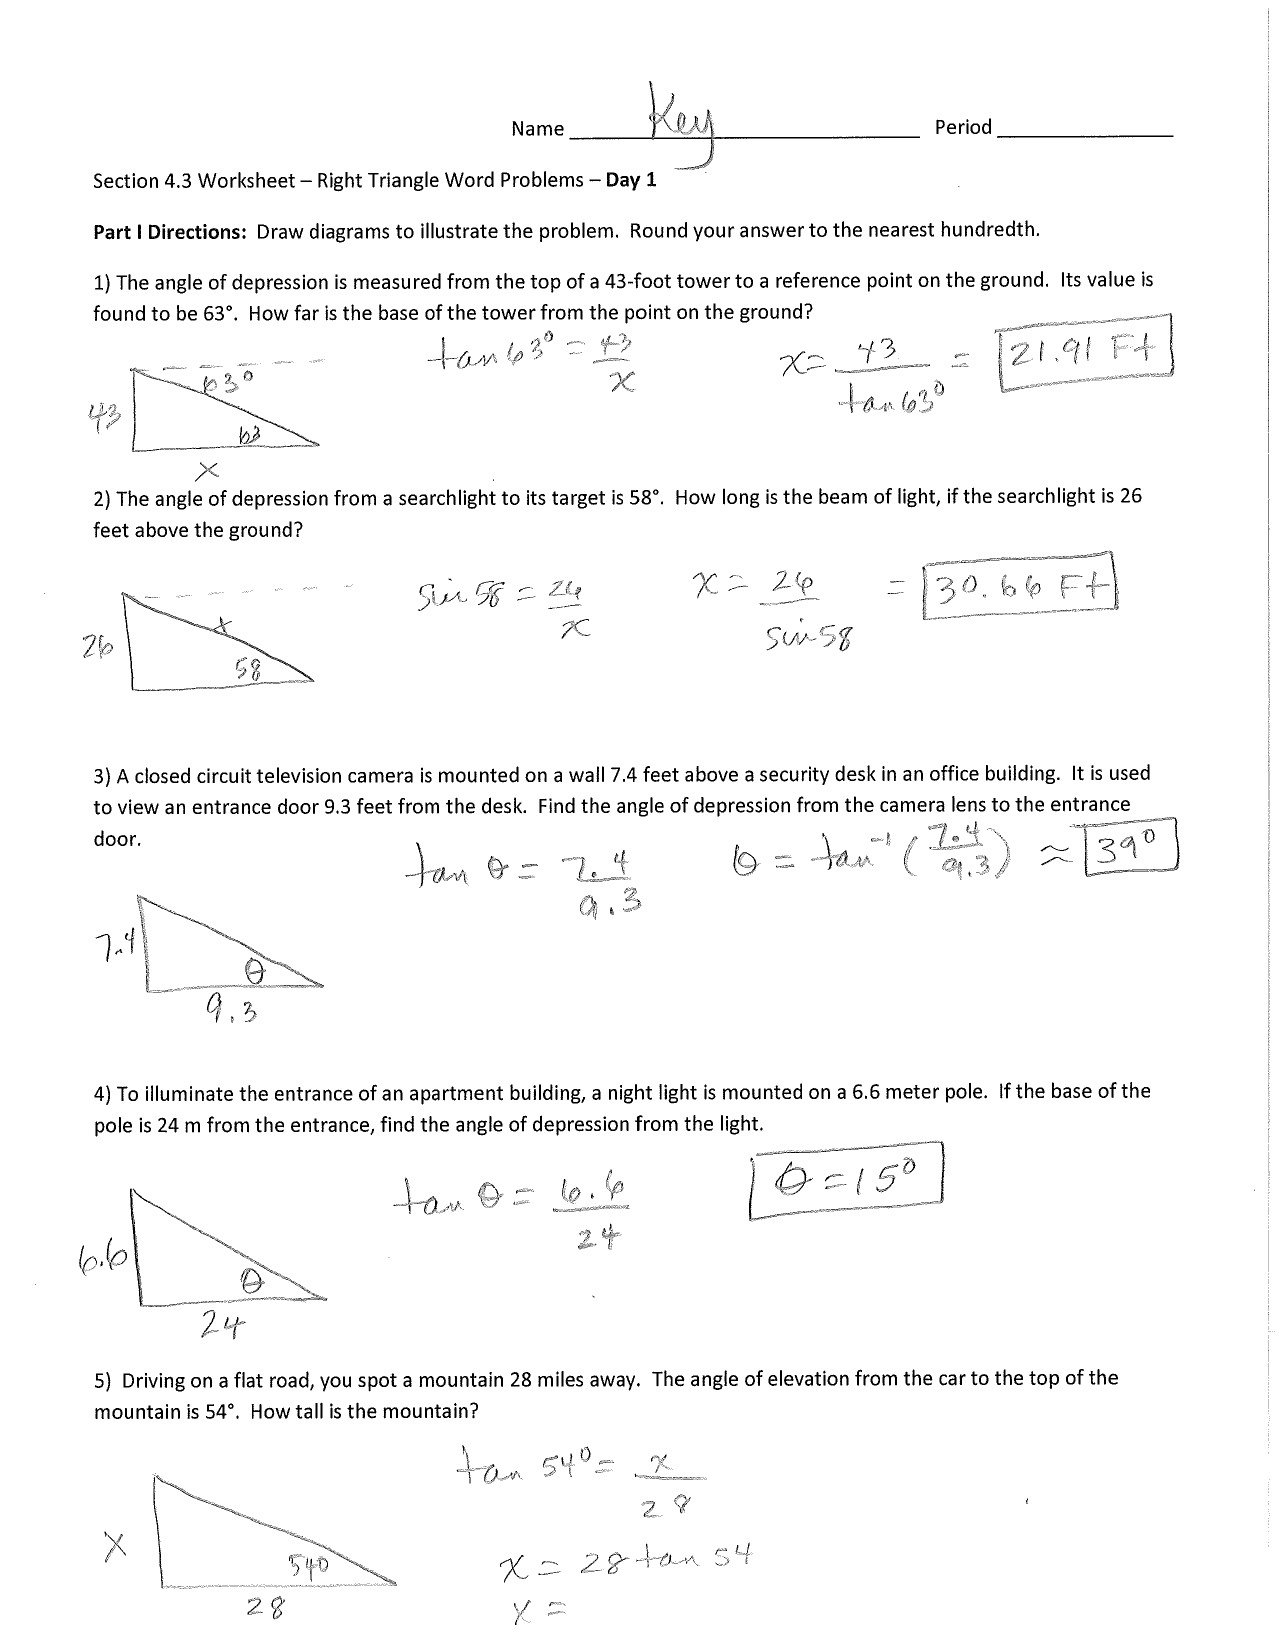 Name яя Section 1.1 Worksheet - Right Triangle Word